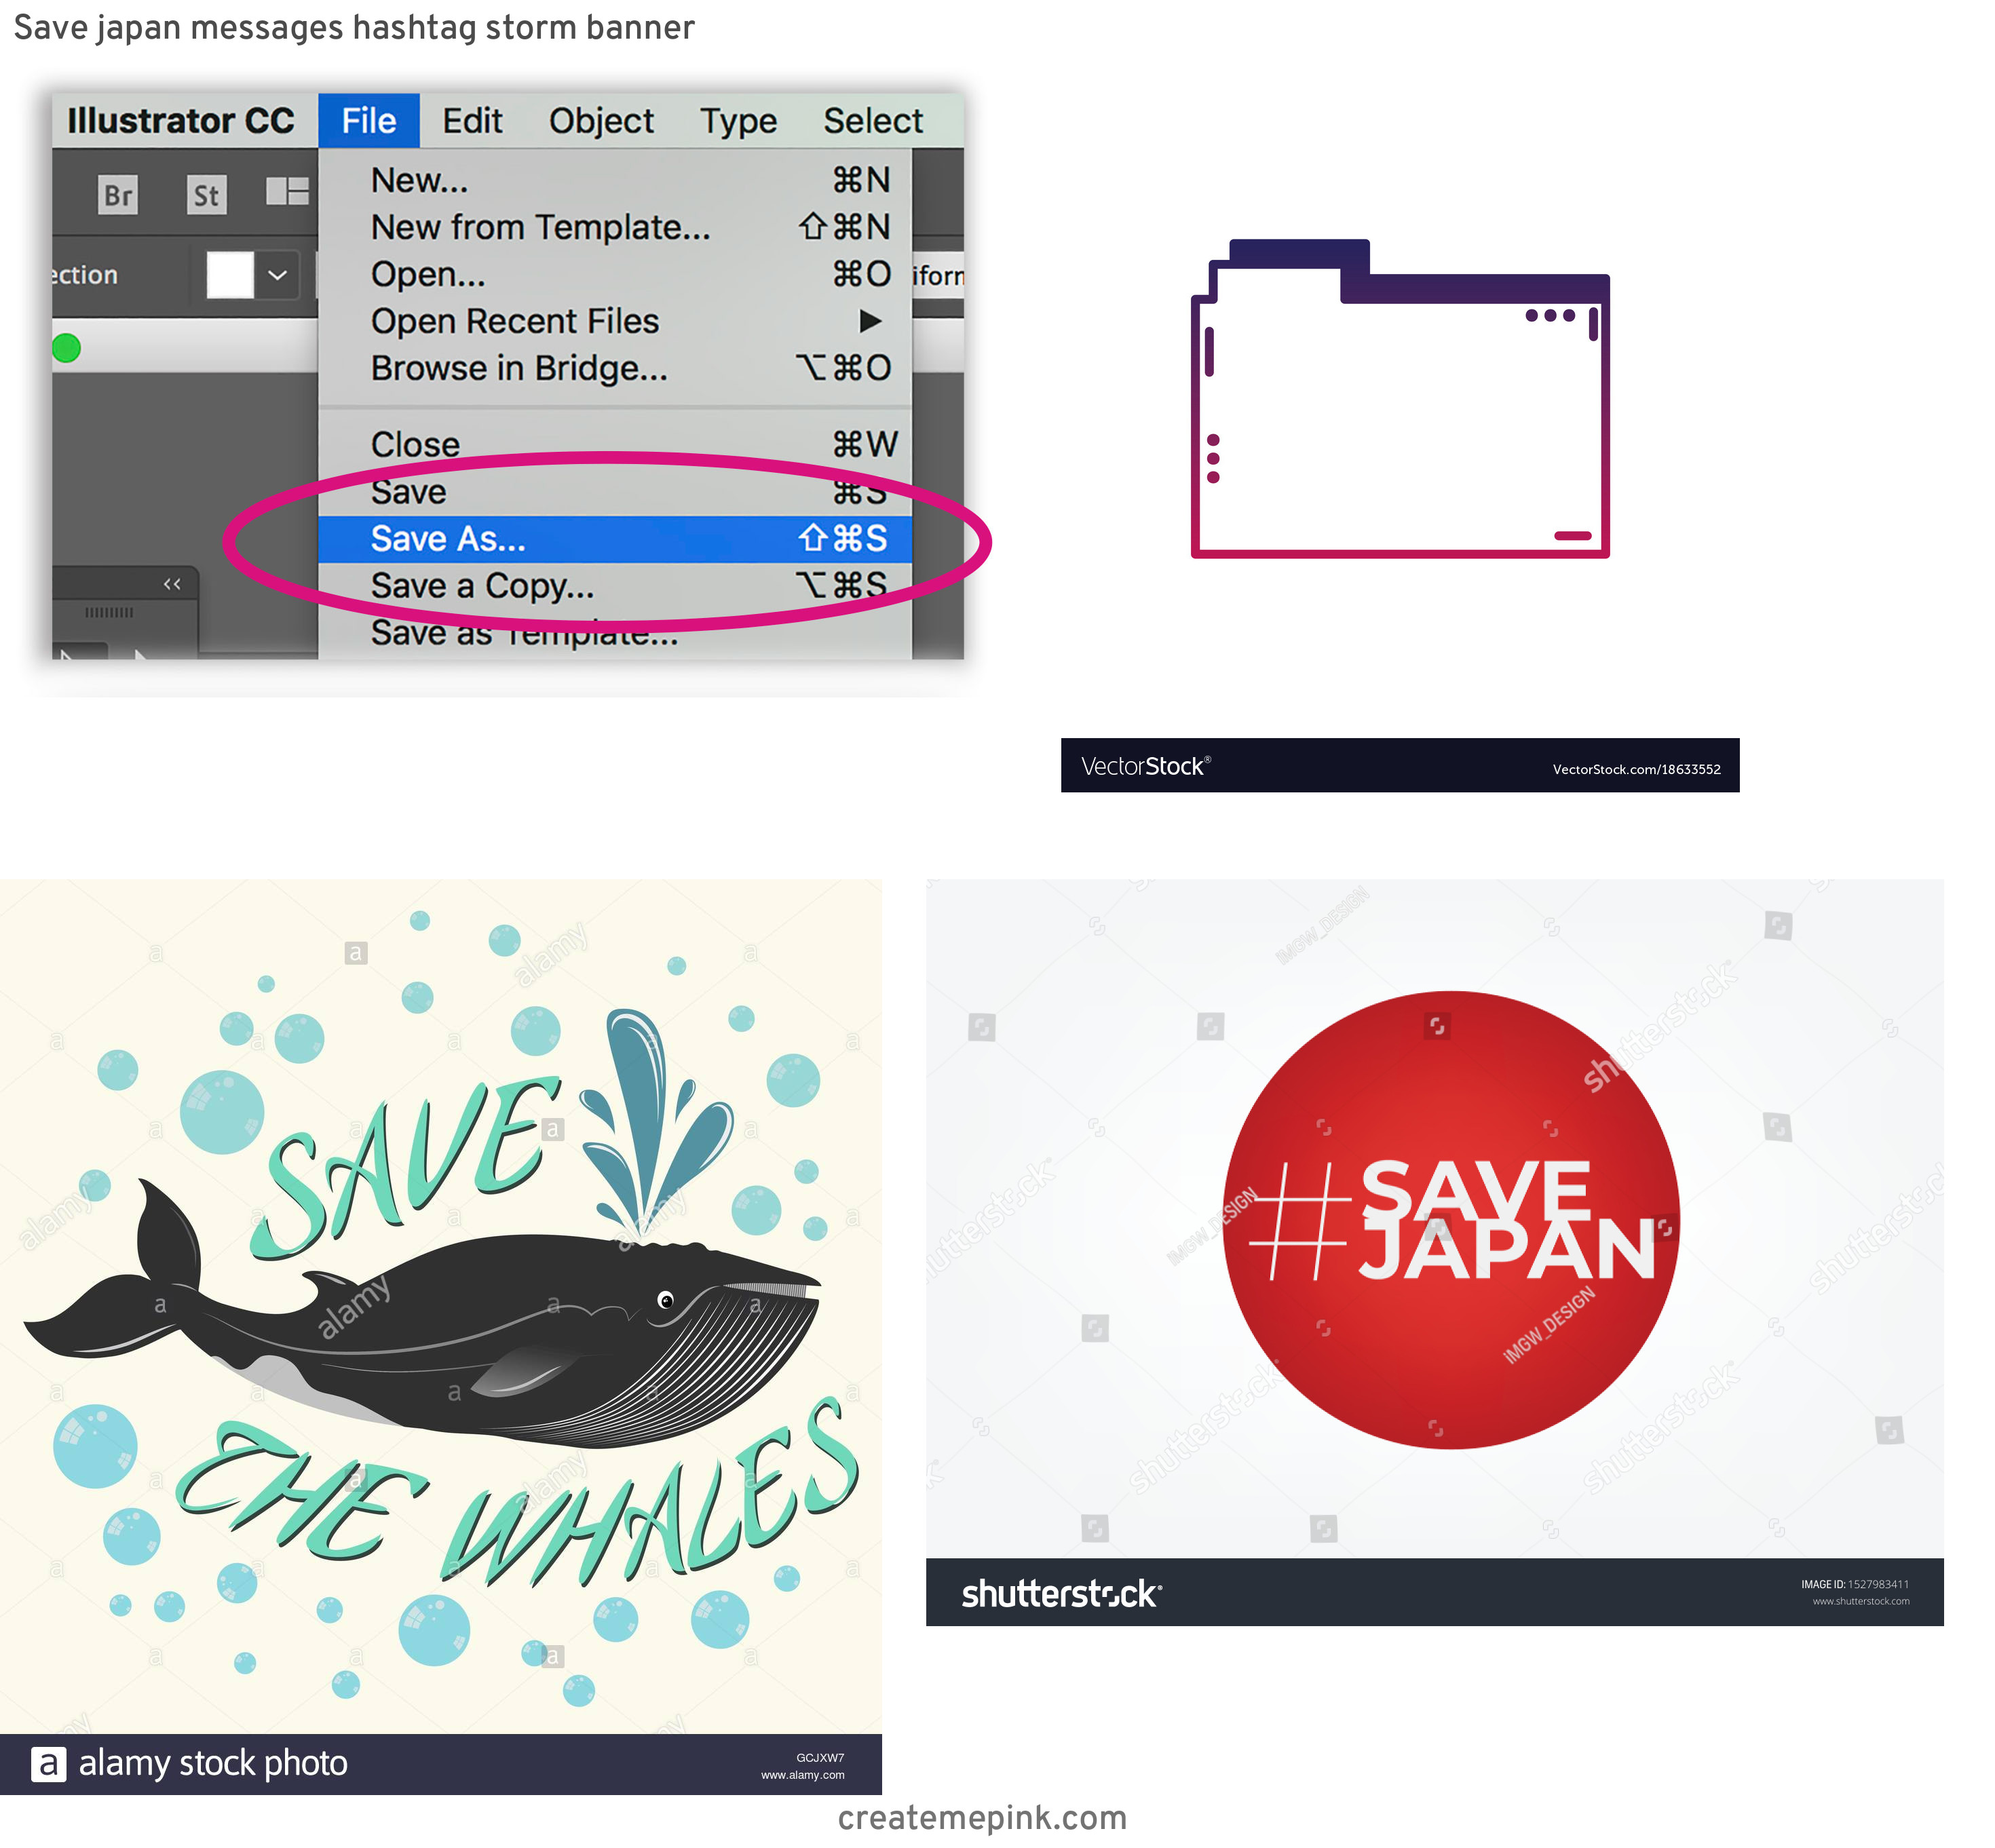 Save As Vector In Illustrator: Save Japan Messages Hashtag Storm Banner